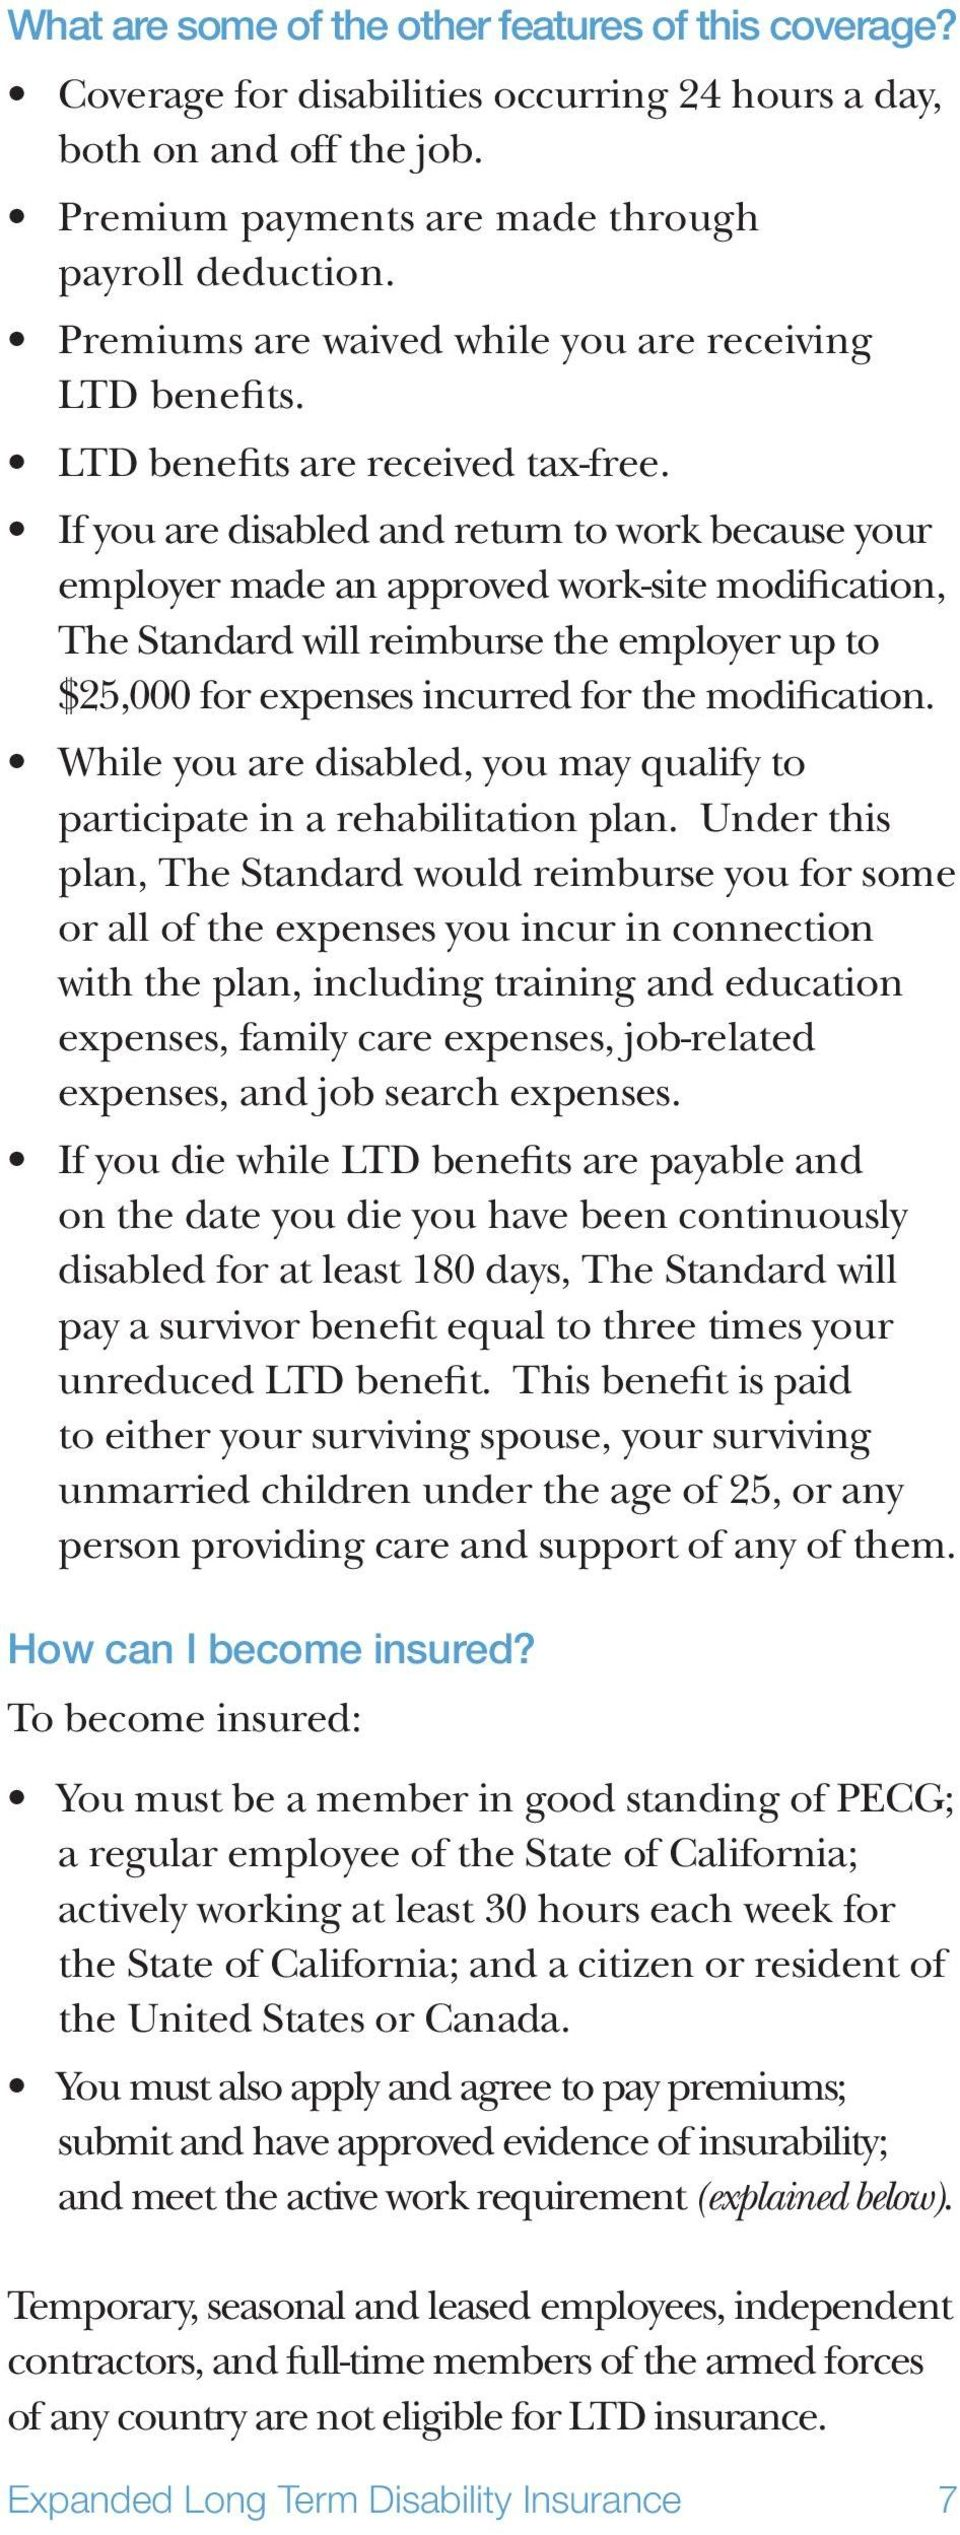 If you are disabled and return to work because your employer made an approved work-site modification, The Standard will reimburse the employer up to $25,000 for expenses incurred for the modification.